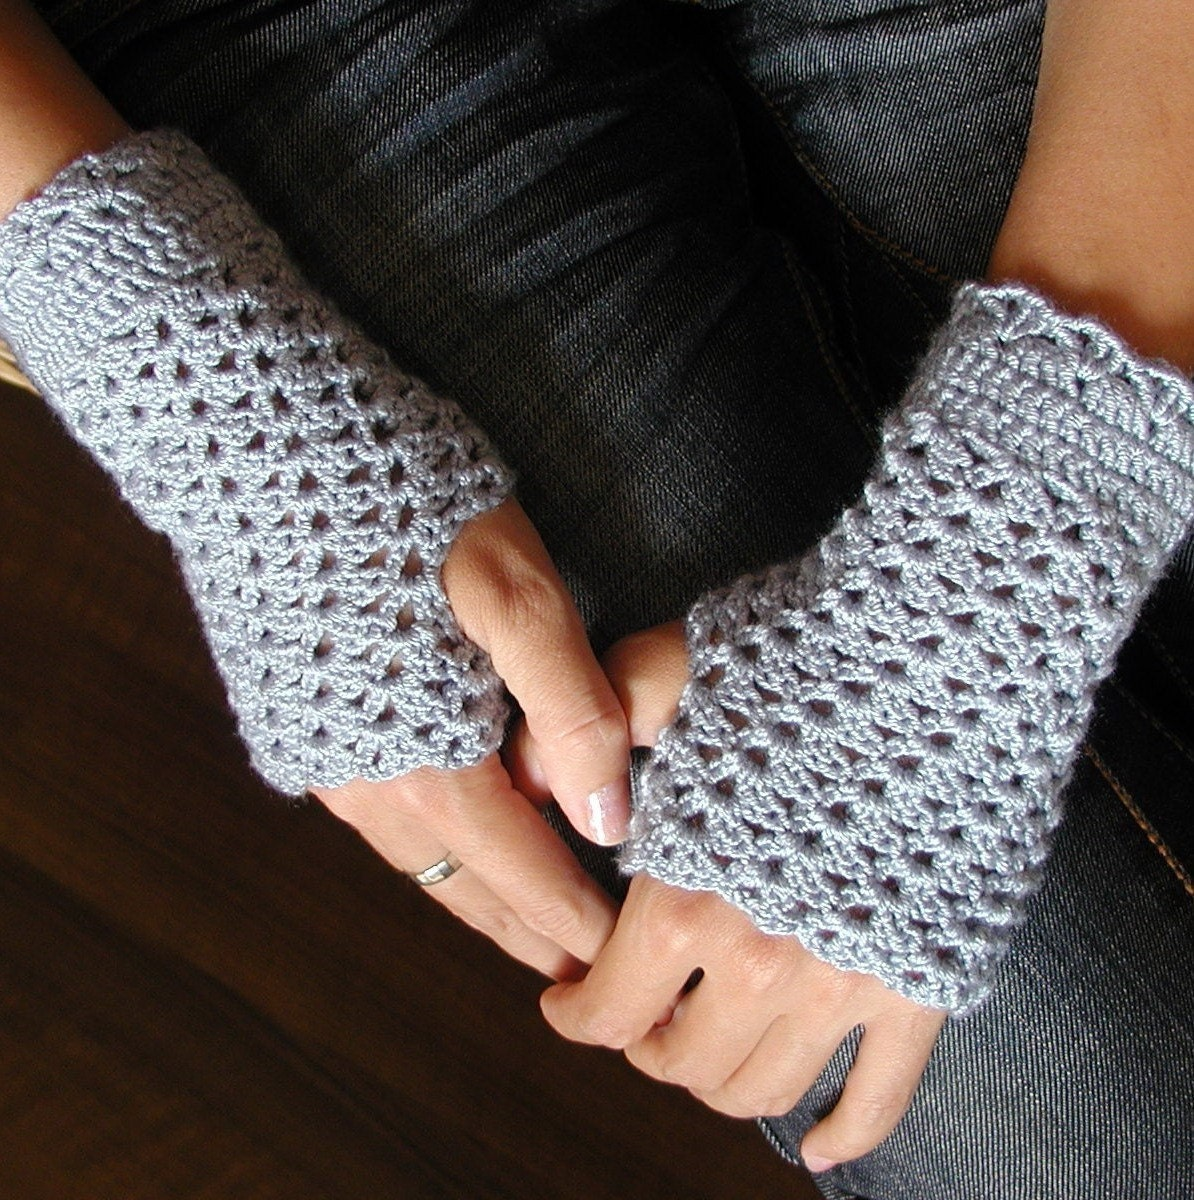 Crocheting Fingerless Gloves : Crocheted Fingerless Mittens PDF Crochet Pattern by FrougesArt